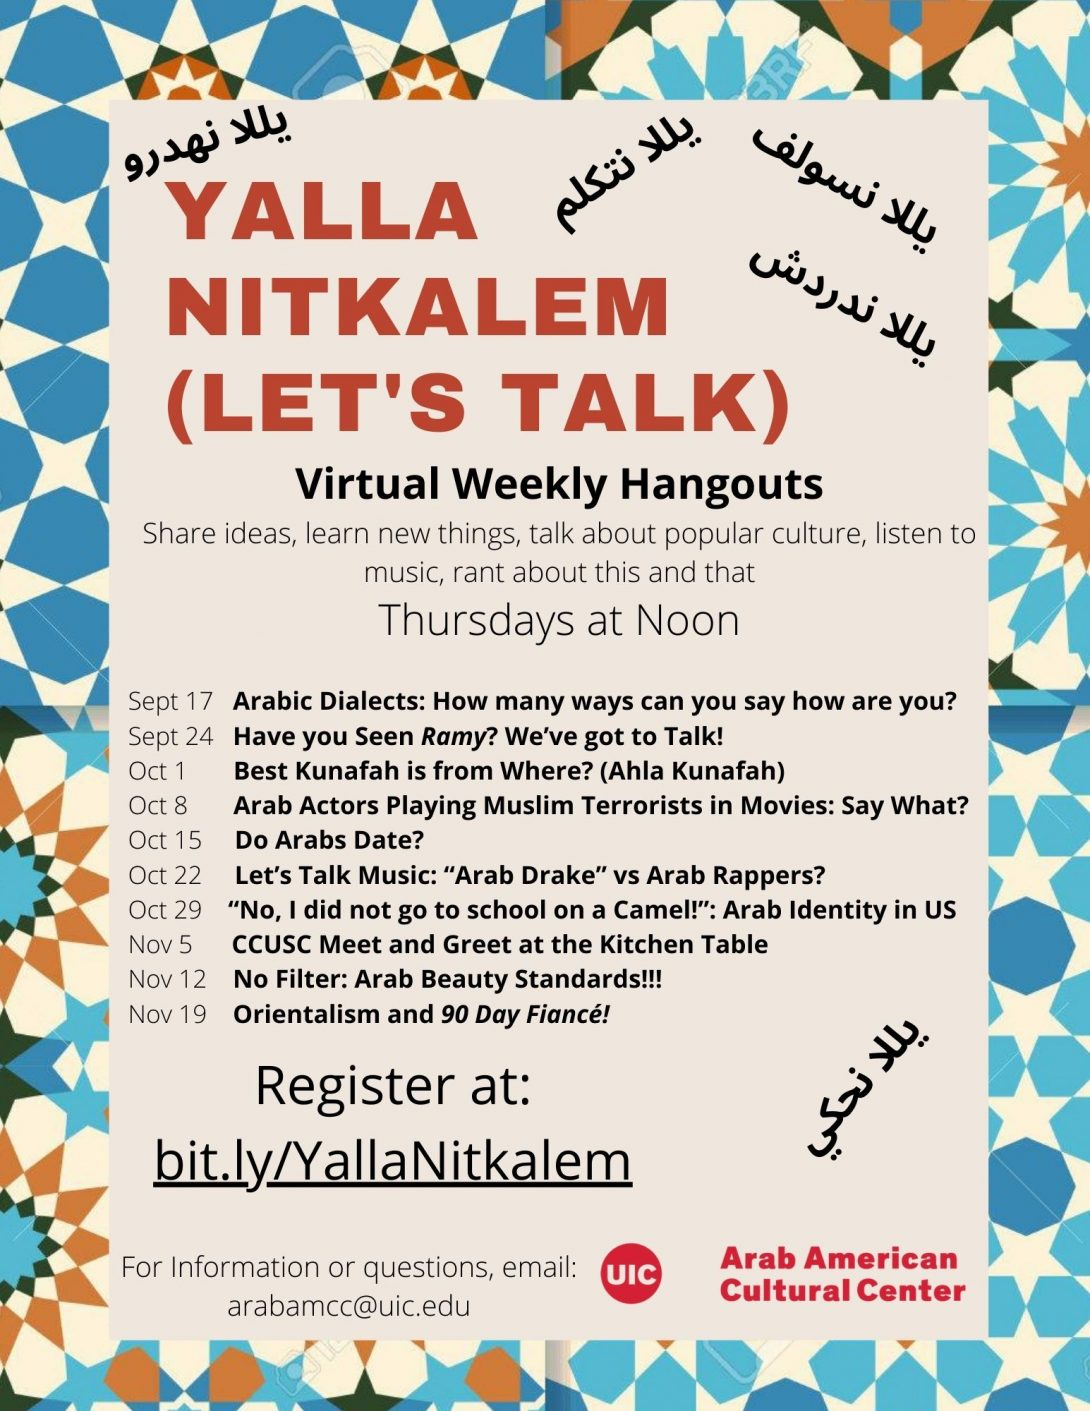 Colorful border around the image with blue, light orange and beige tiles. In the middle the flyer lists the name of the event Yalla NitKalem, information about when it is and the topics per day. Center logo is on the bottom right. Registeration information is on the close to bottom left followed by contact information. Different arabic dialect translations of the words Yalla Nitkalem (let's Talk) is sprinkled throughout in black lettering